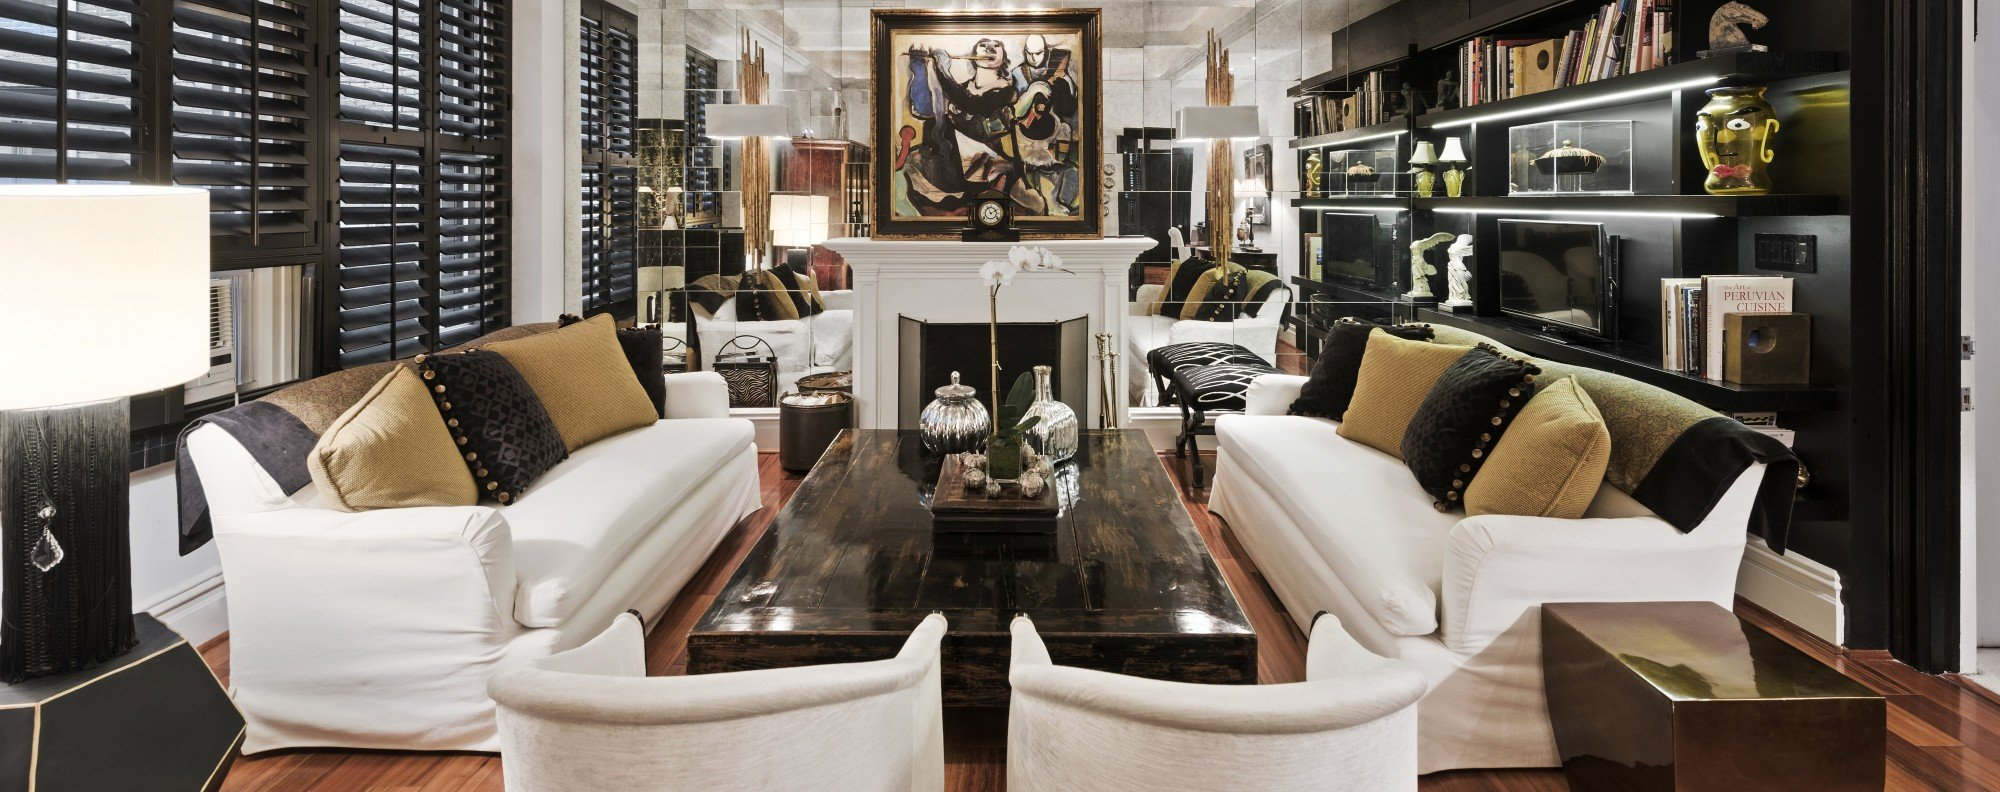 From New York to Hong Kong and back: art-deco apartment a tribute ...